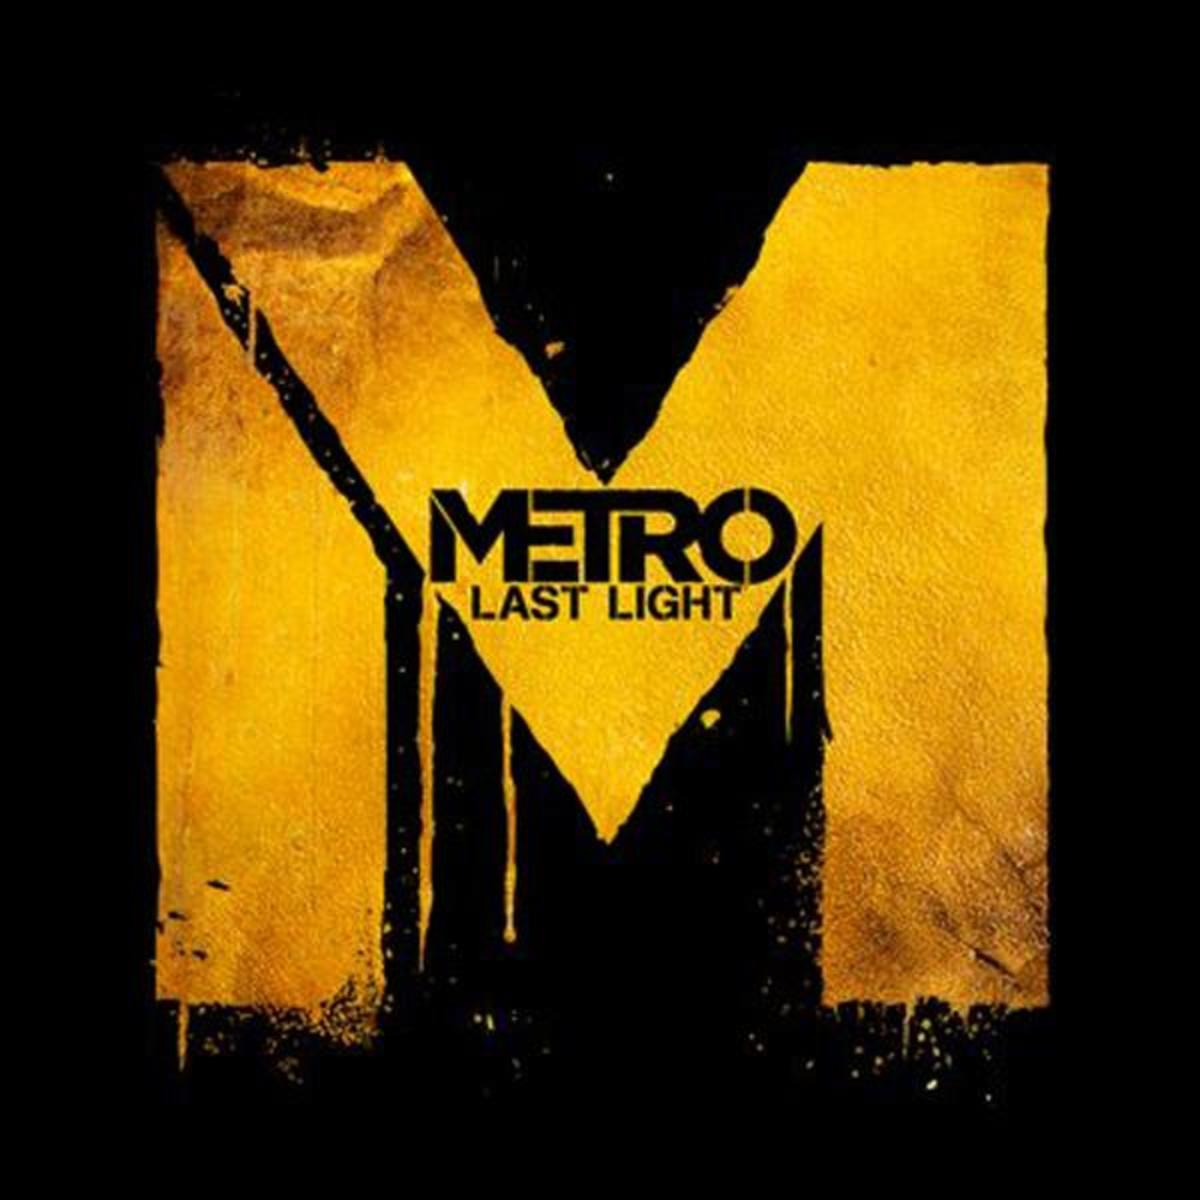 Through its dark charm, Metro: Last Light lives up to its predecessor Metro: 2033 and is another step forward in the saga.